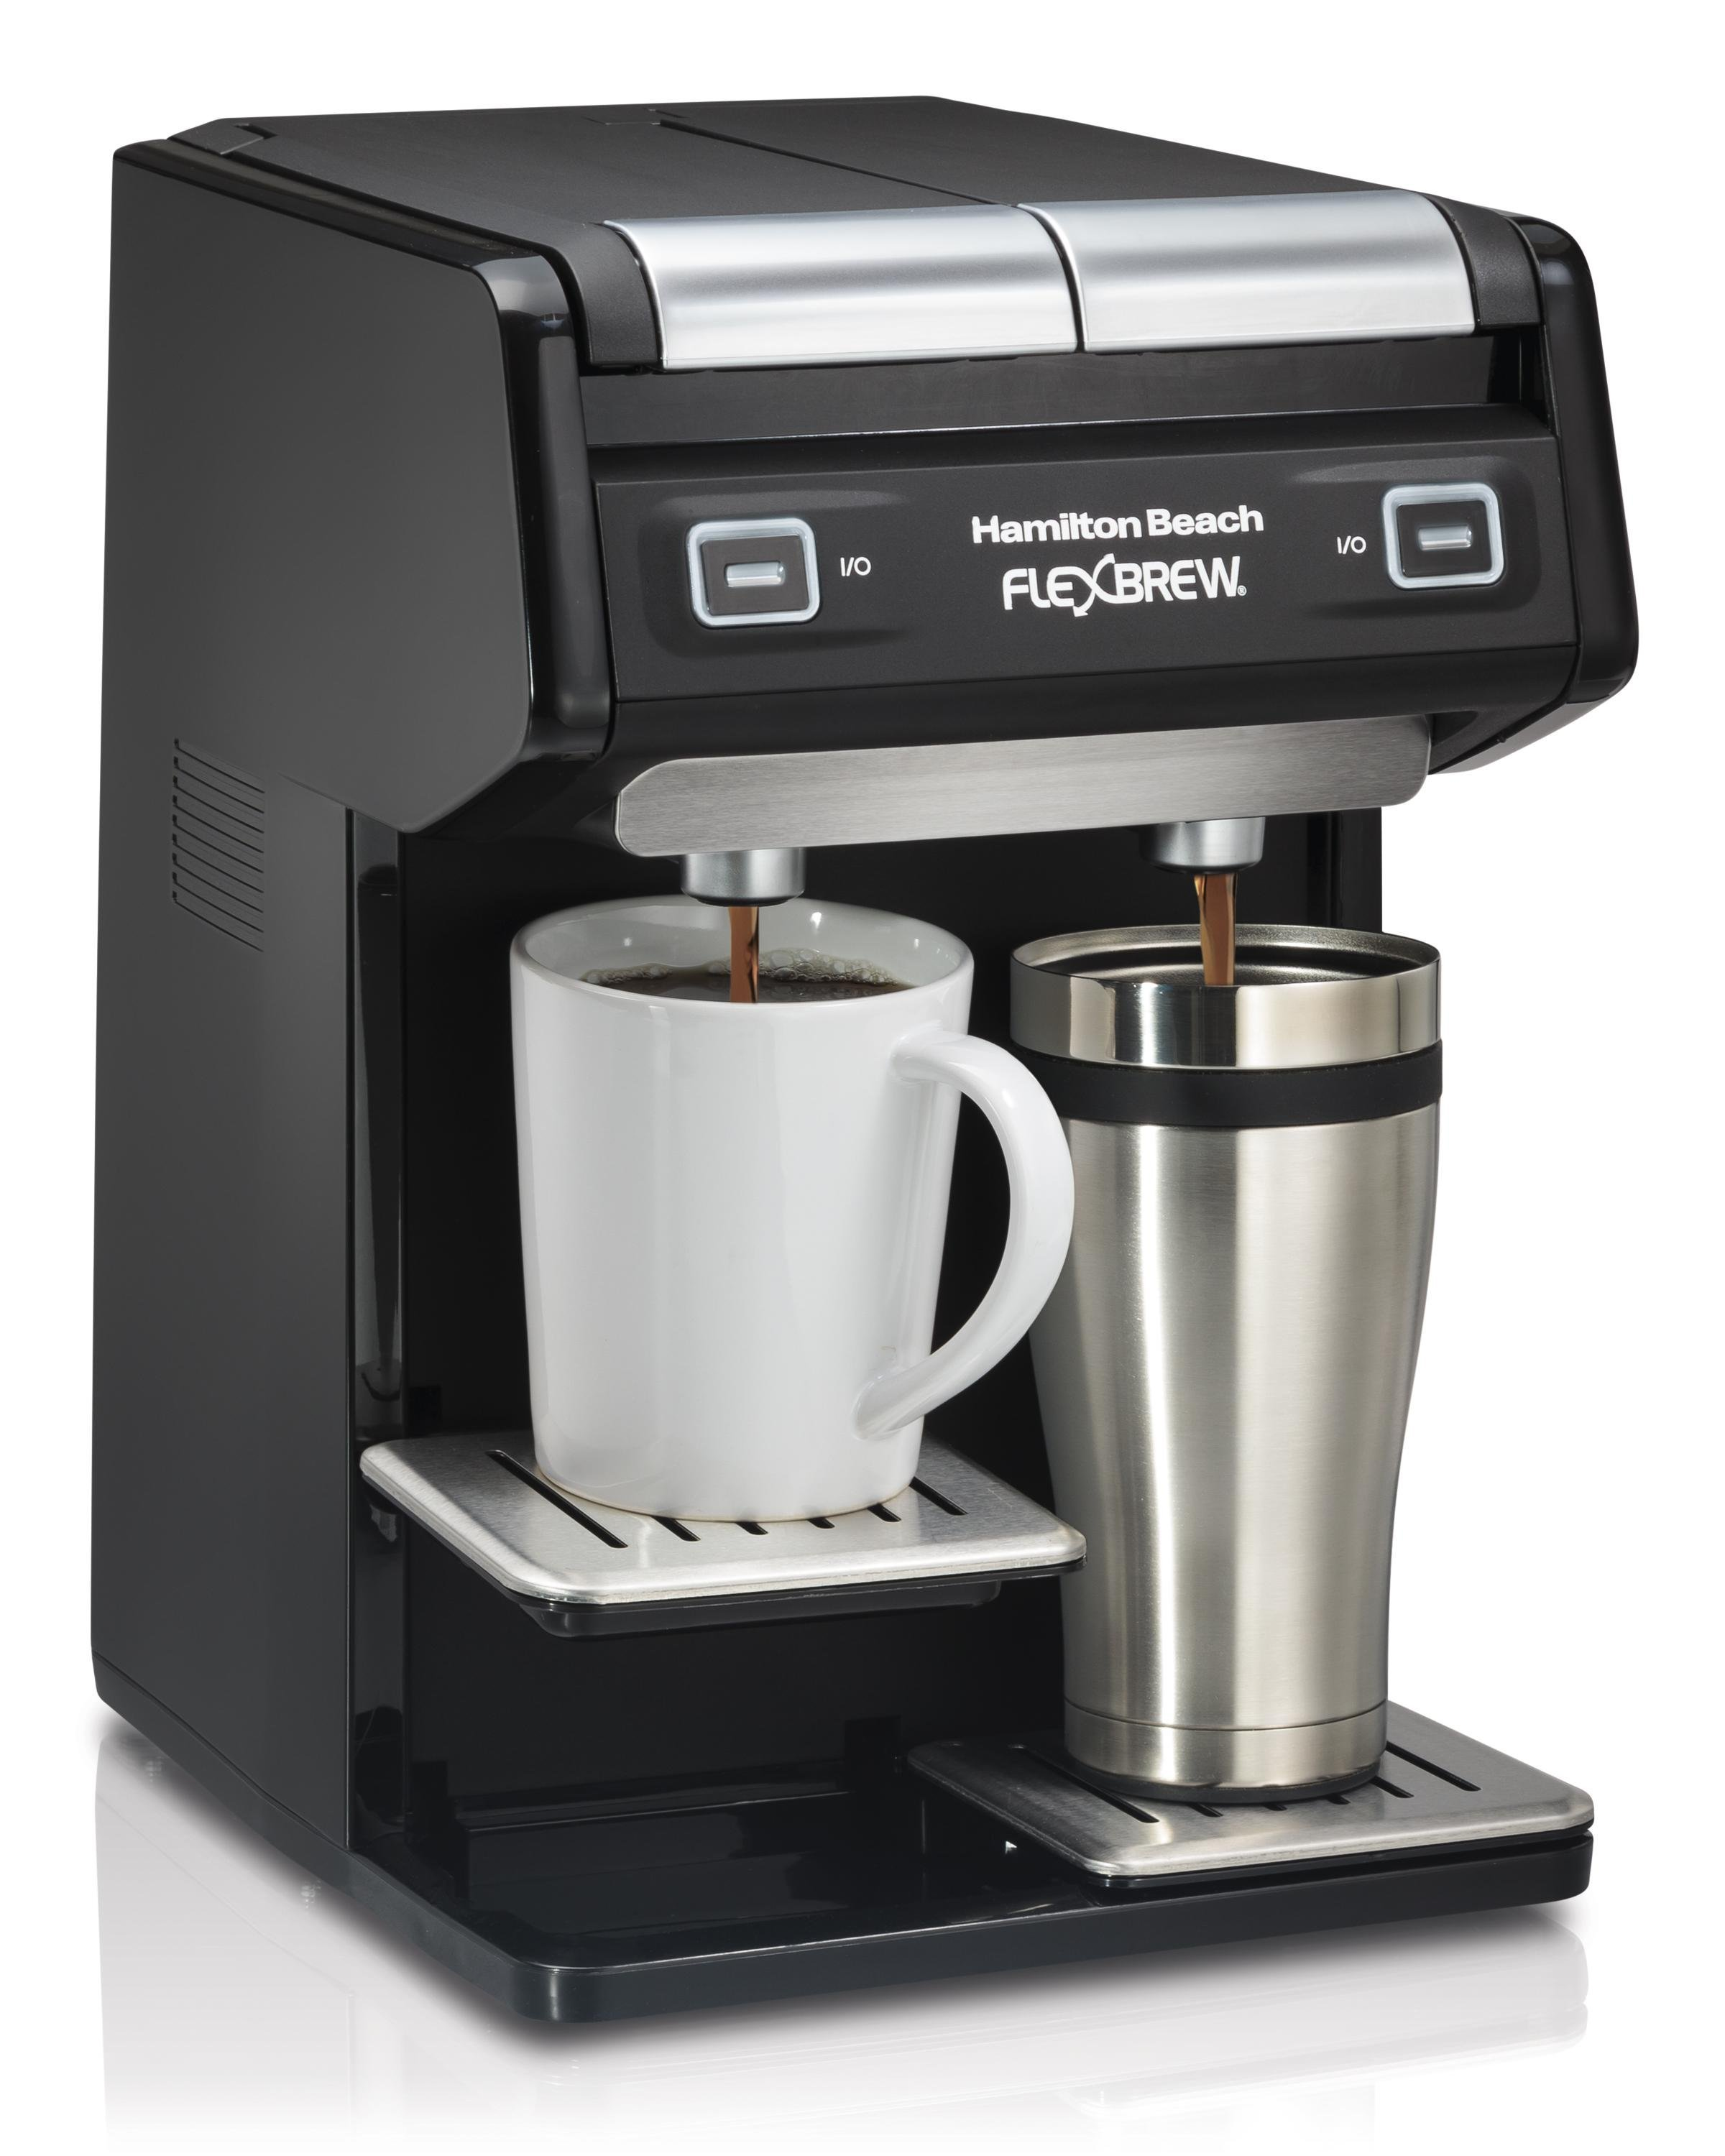 Coffee Maker For One : Amazon.com: Hamilton Beach 49998 FlexBrew Dual Single Serve Coffee Maker, Black: Kitchen & Dining